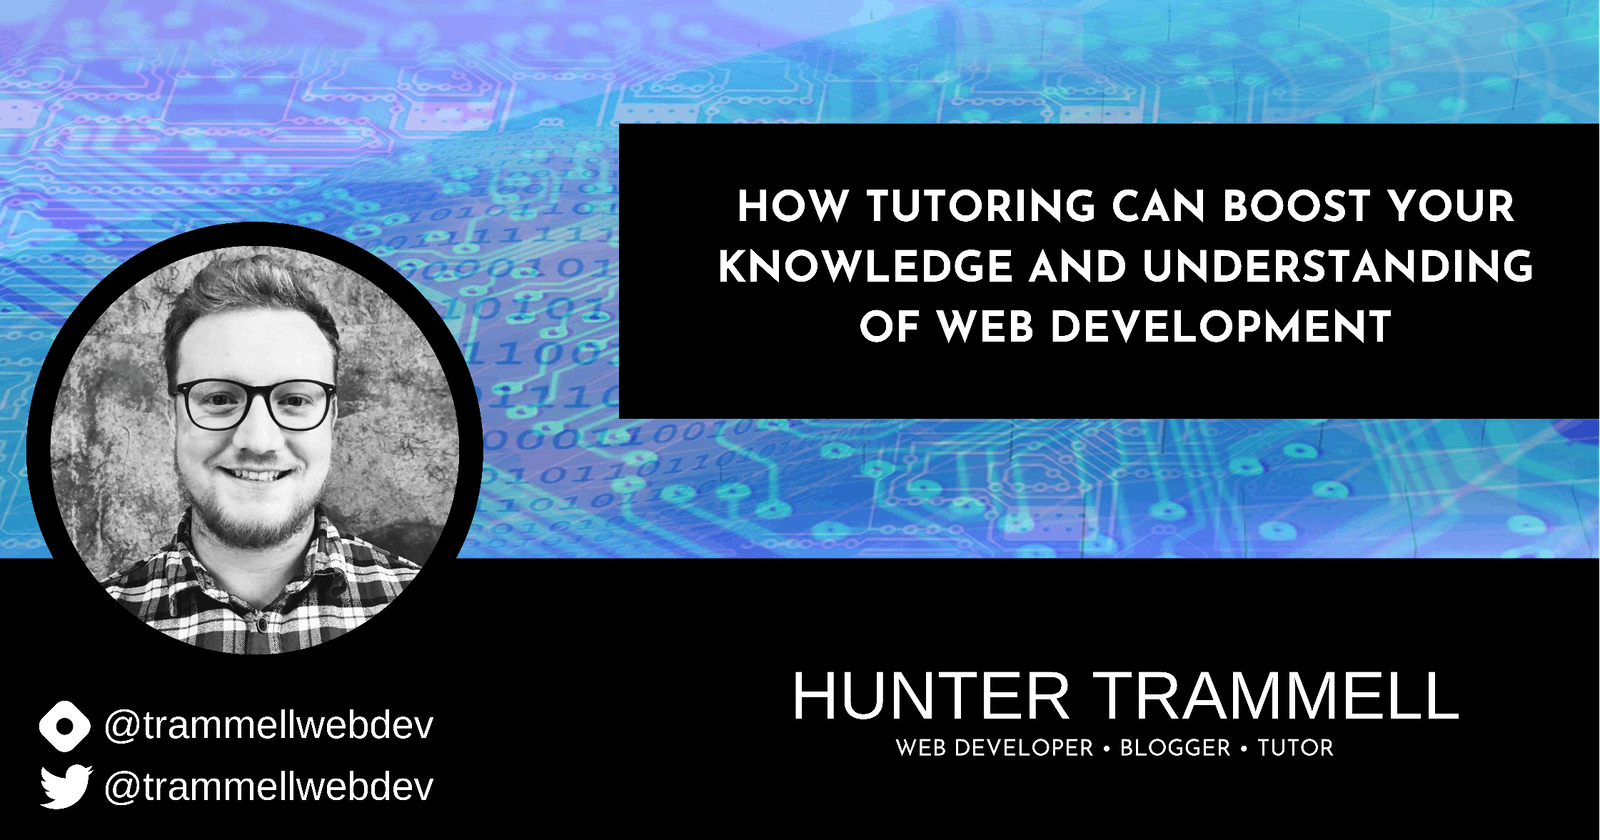 How Tutoring Can Boost Your Knowledge and Understanding of Web Development